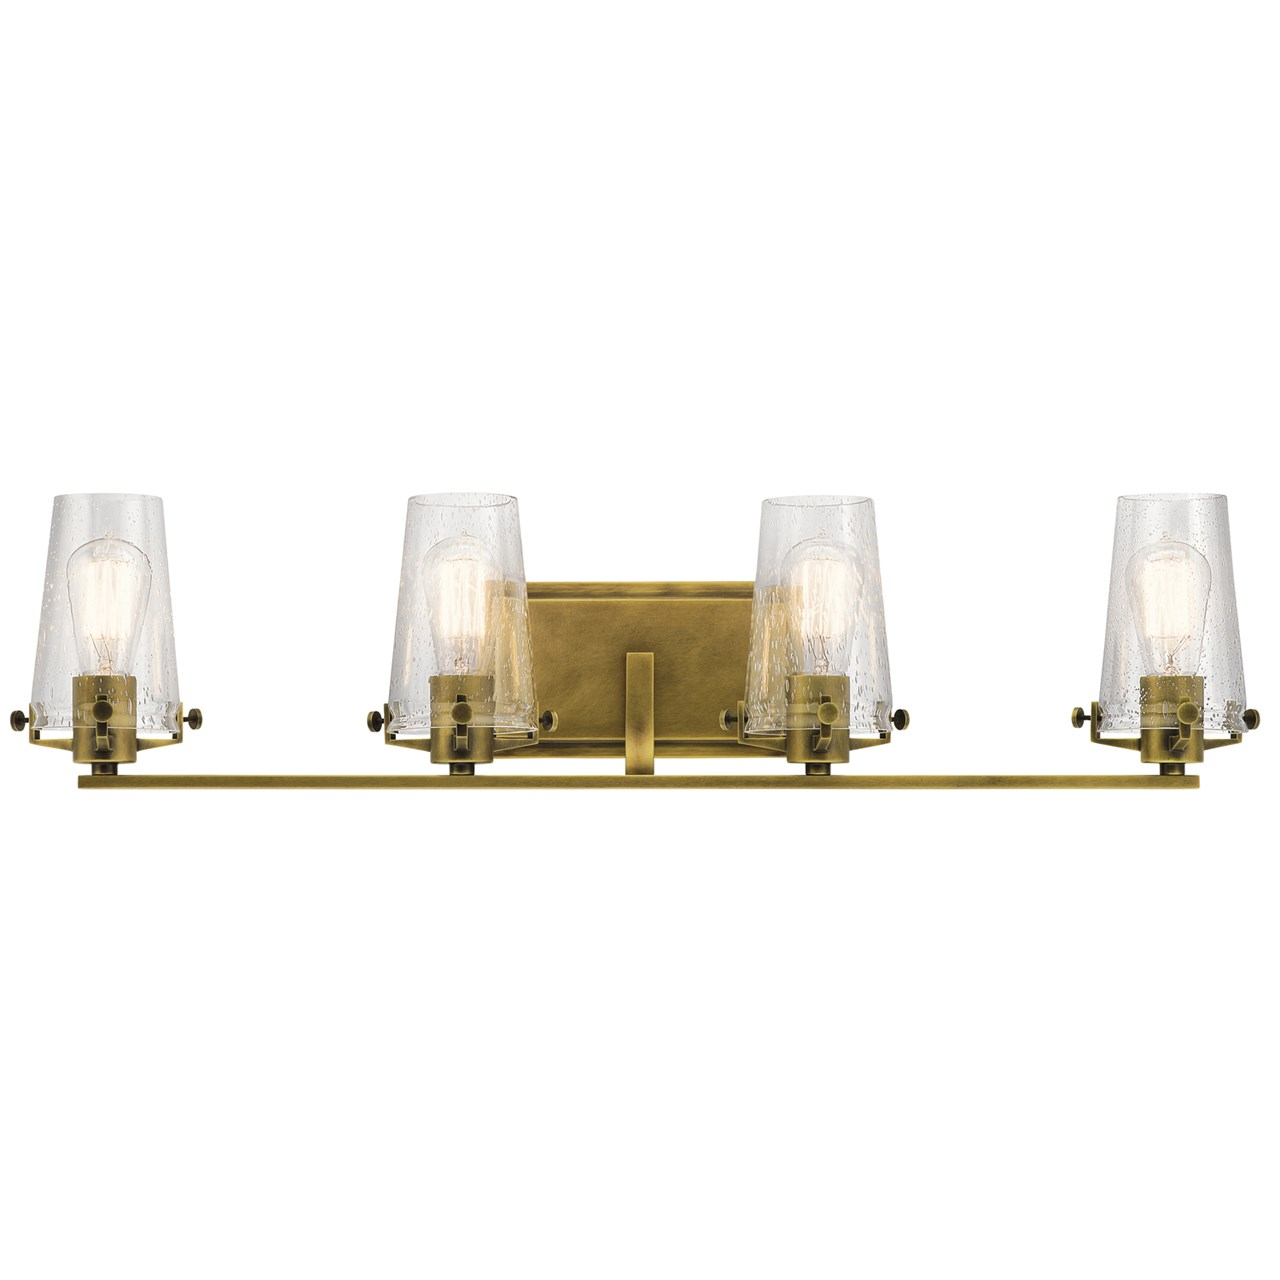 Alton™ 4 Light Vanity Light Natural Brass